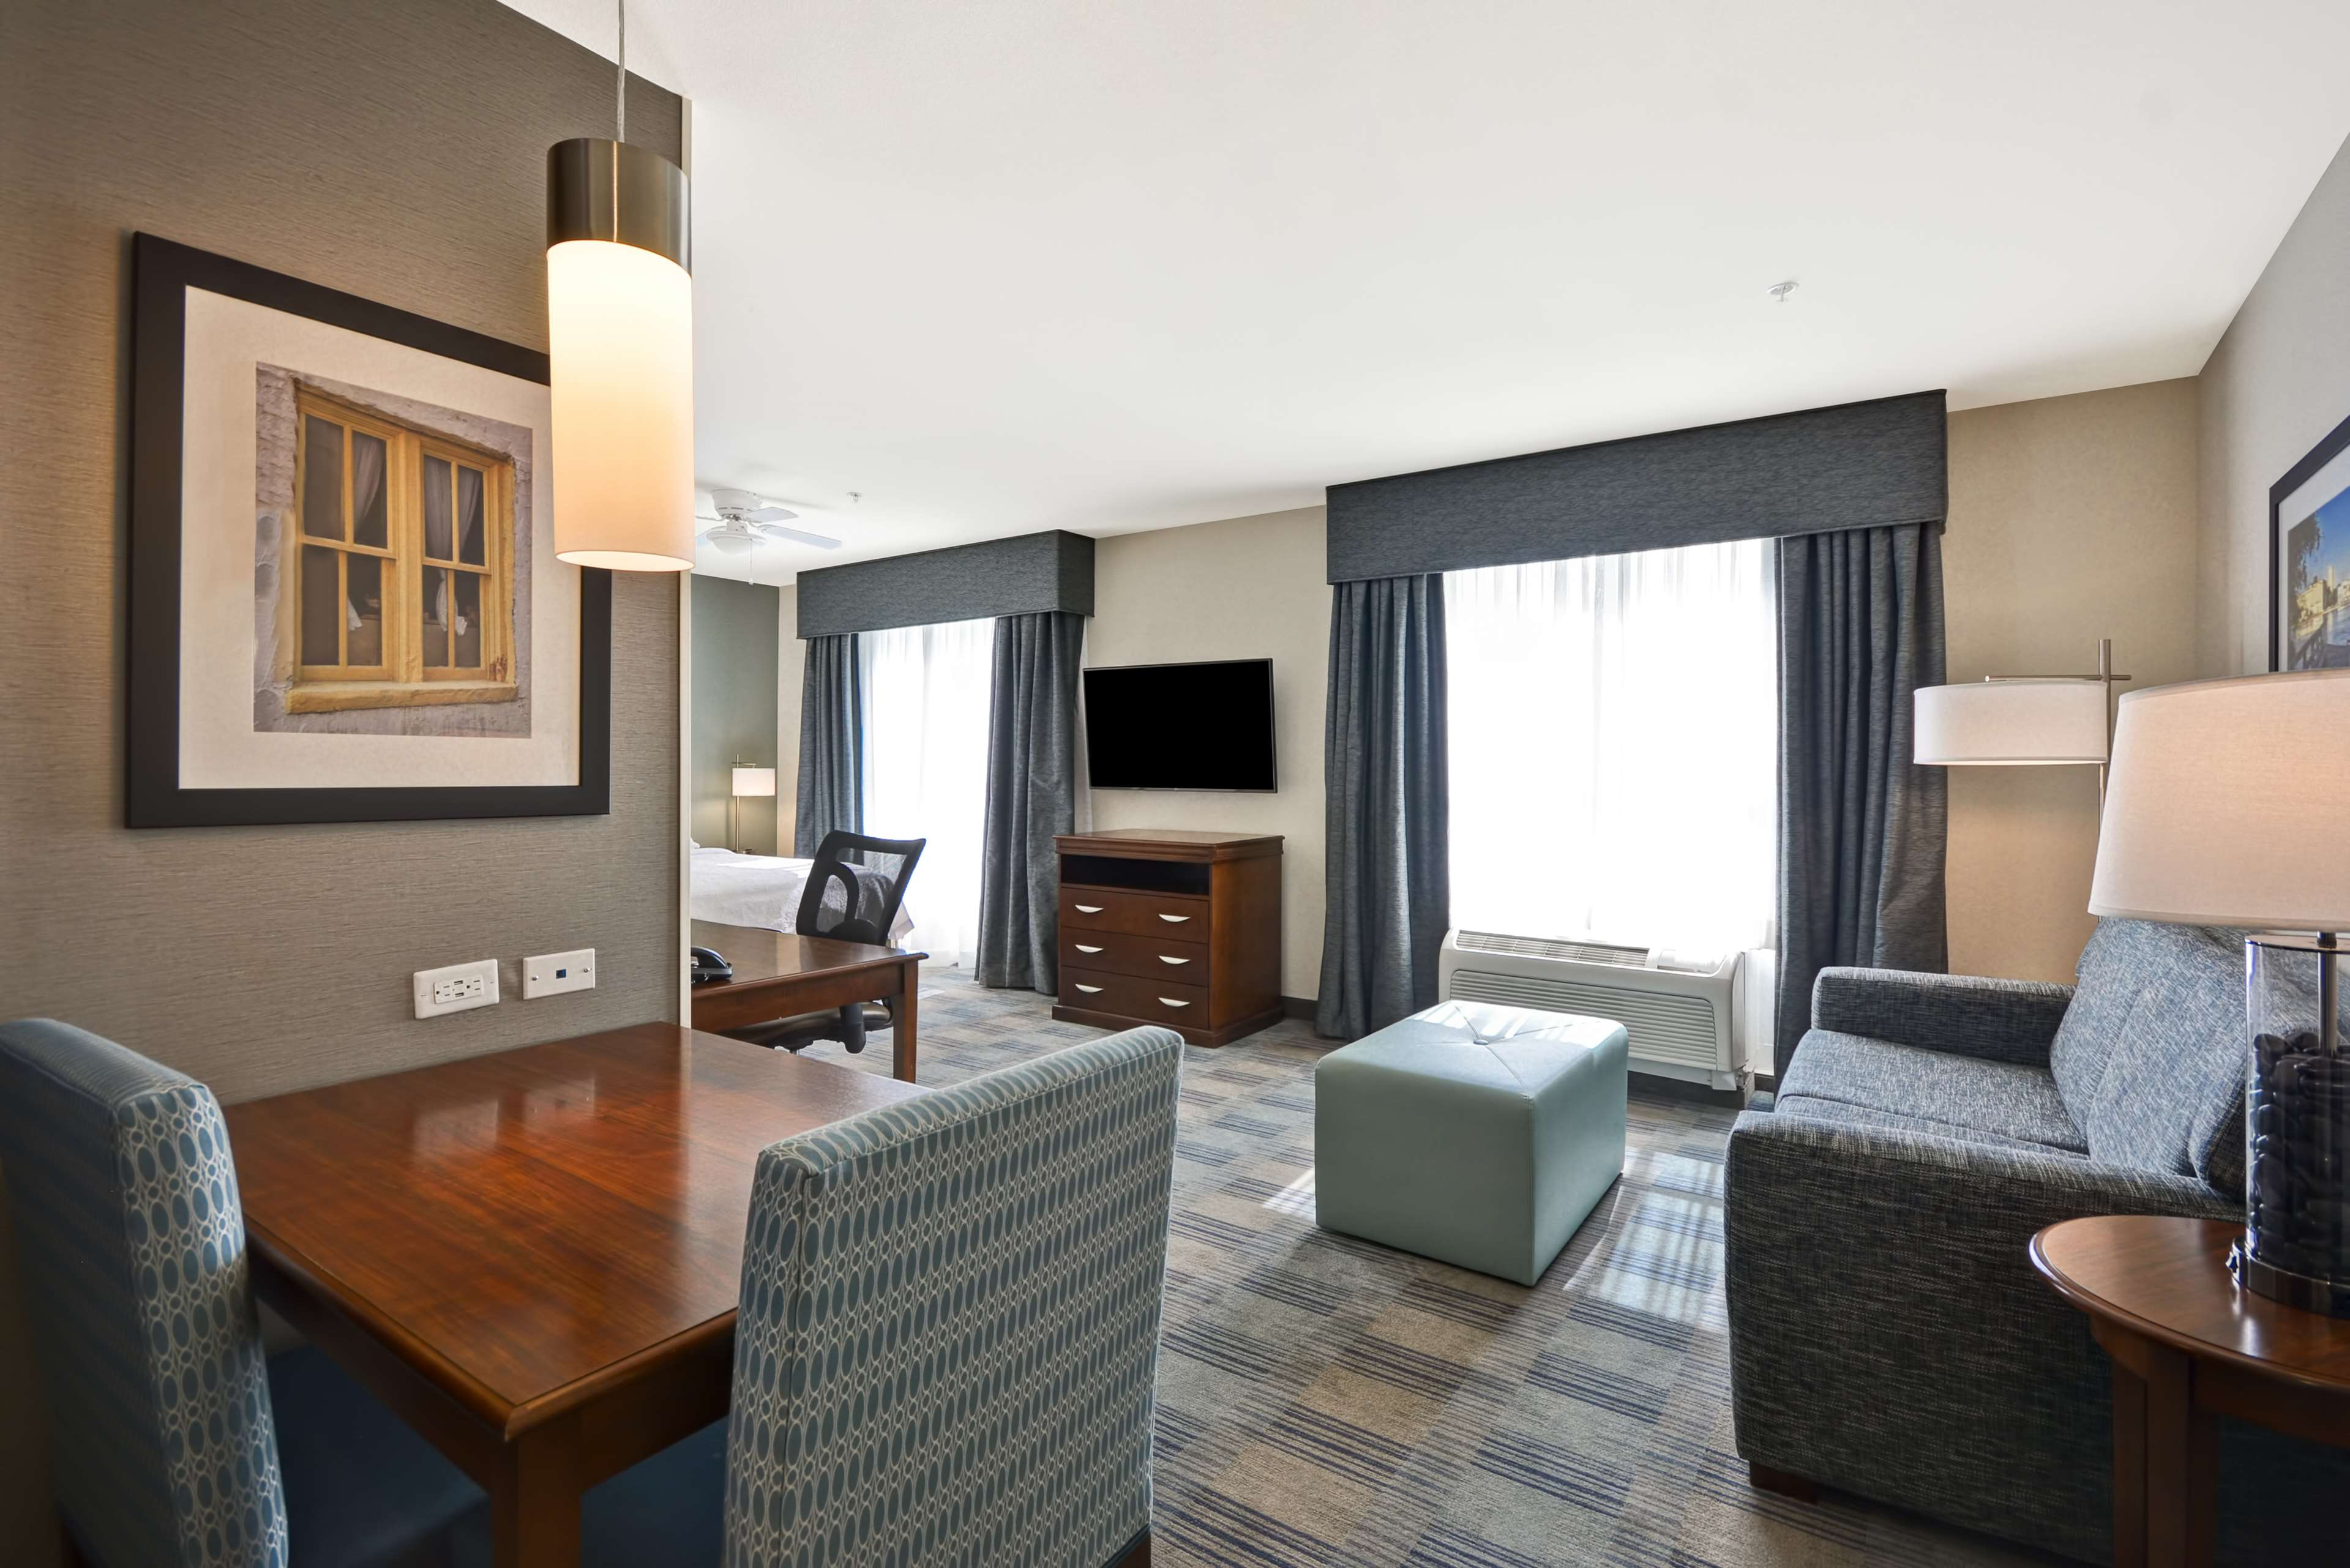 Homewood Suites by Hilton Wilmington/Mayfaire, NC image 20